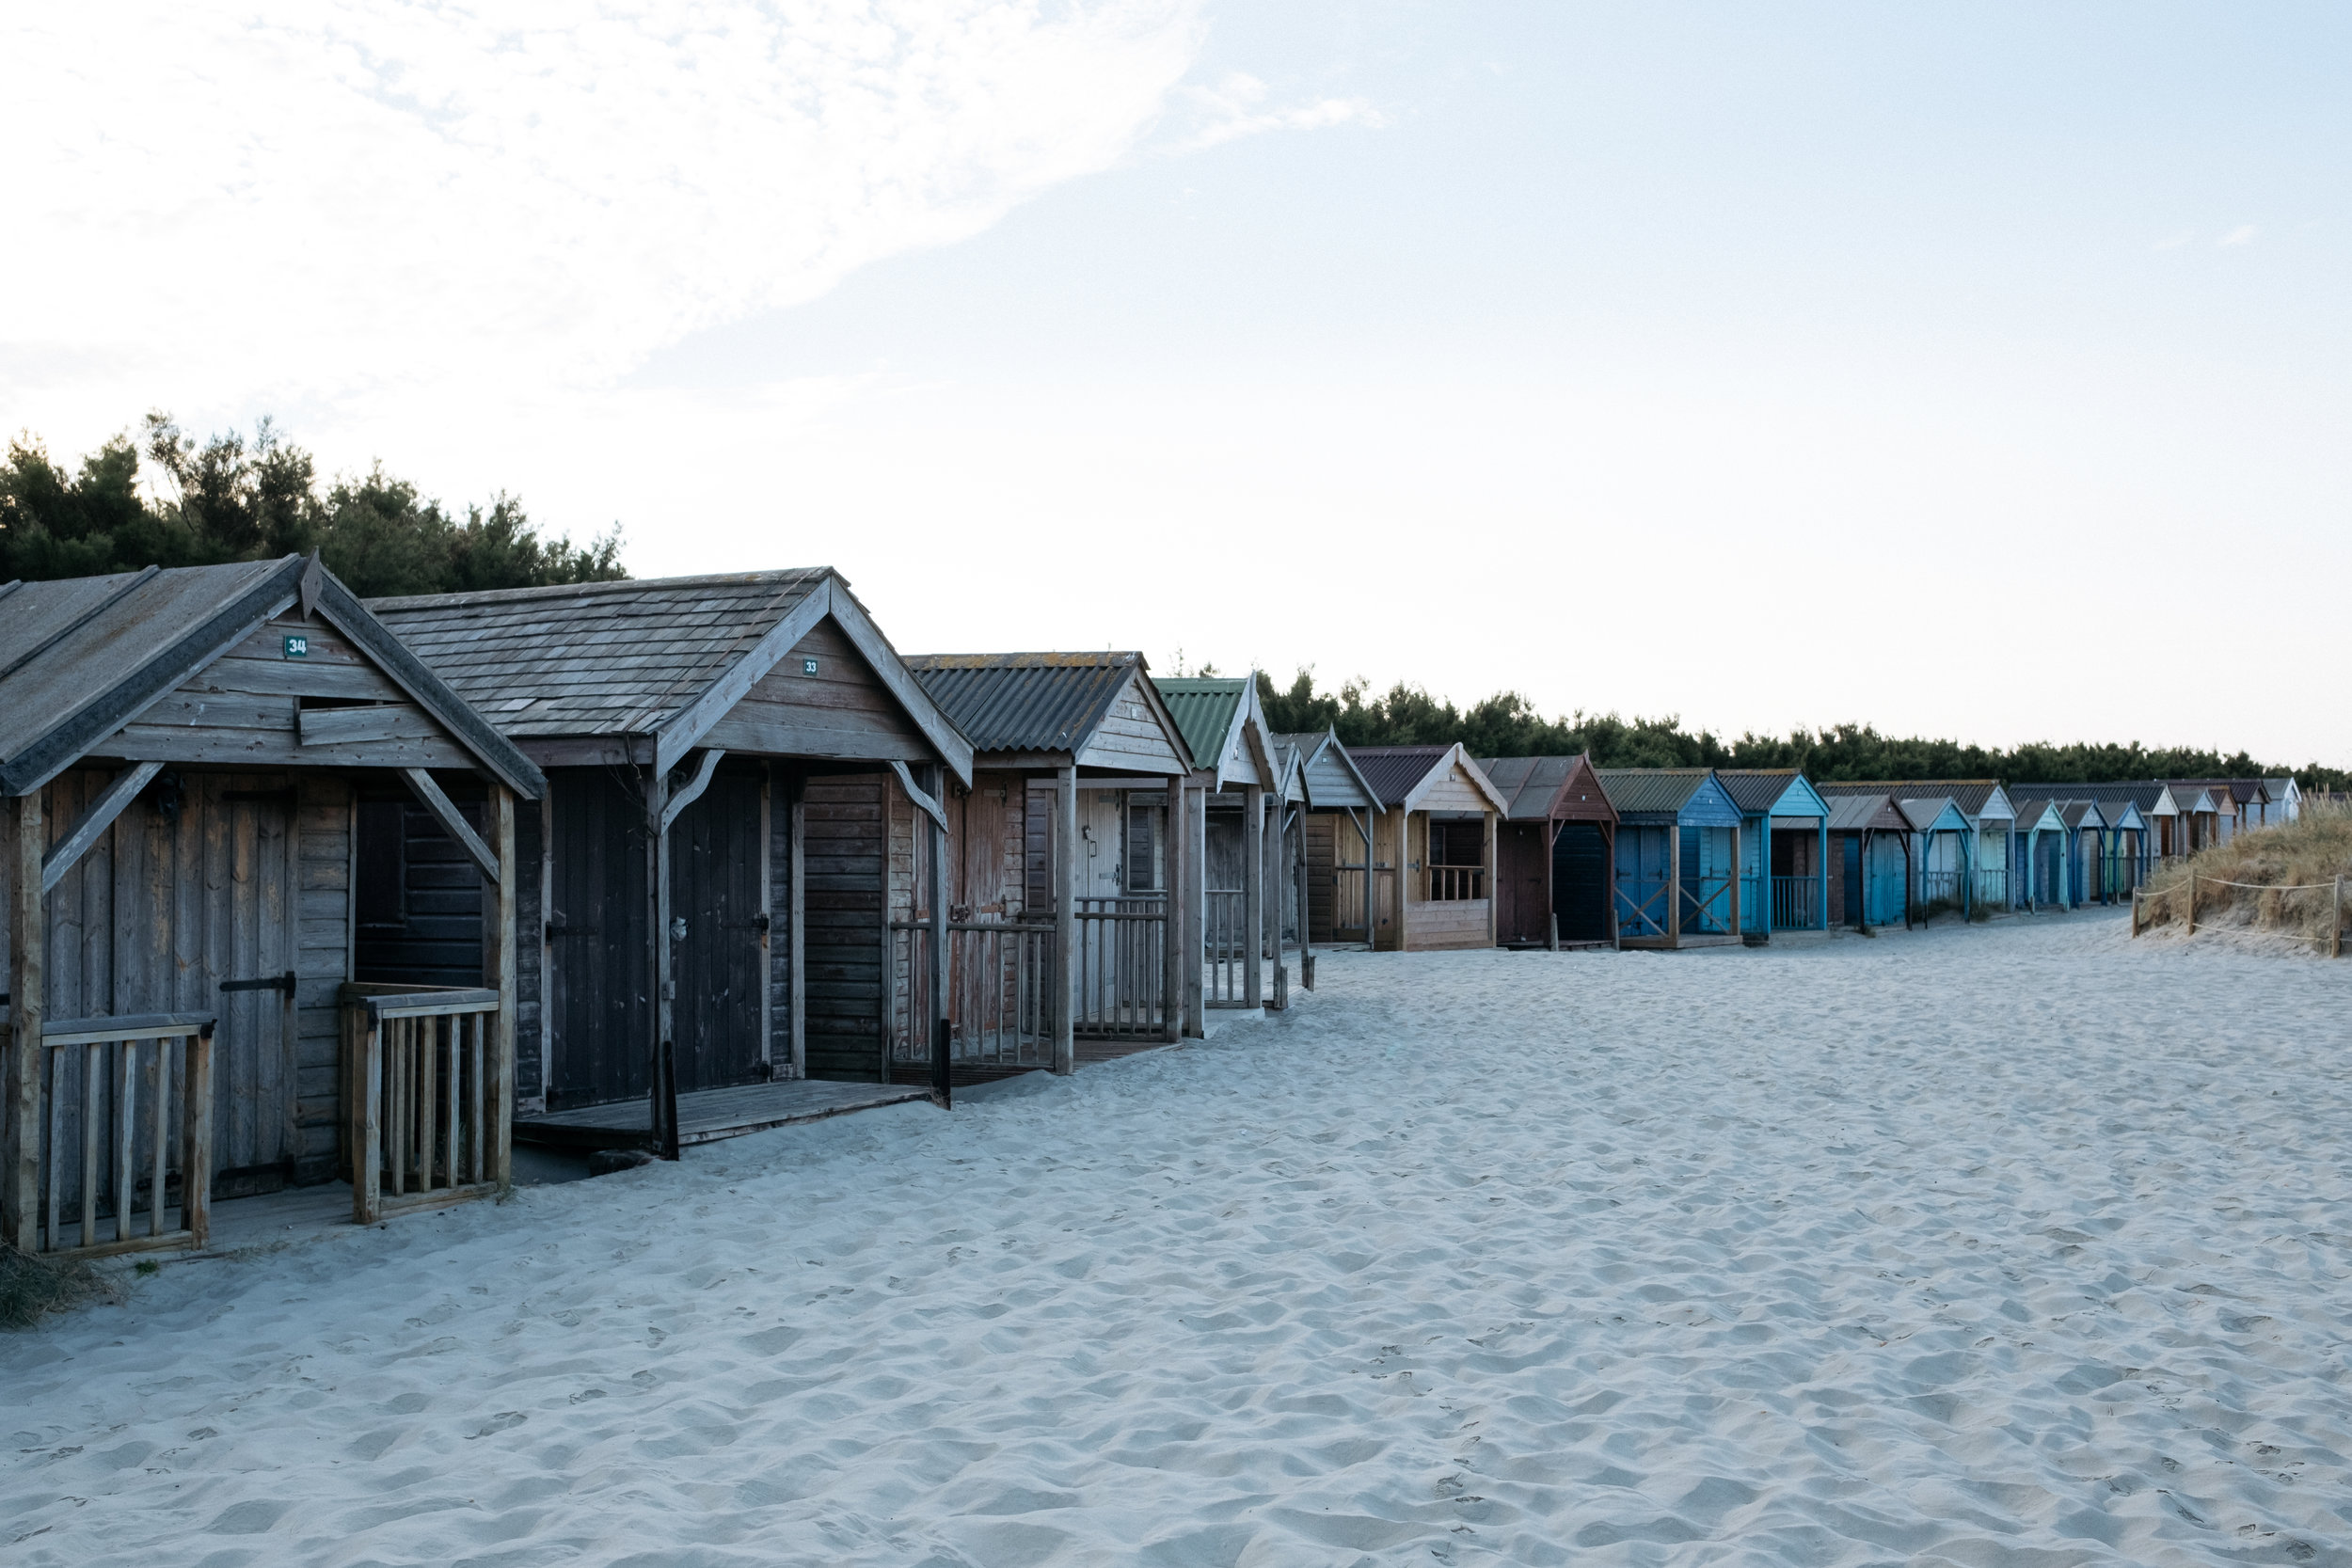 Beach huts on West Wittering beach at sunrise